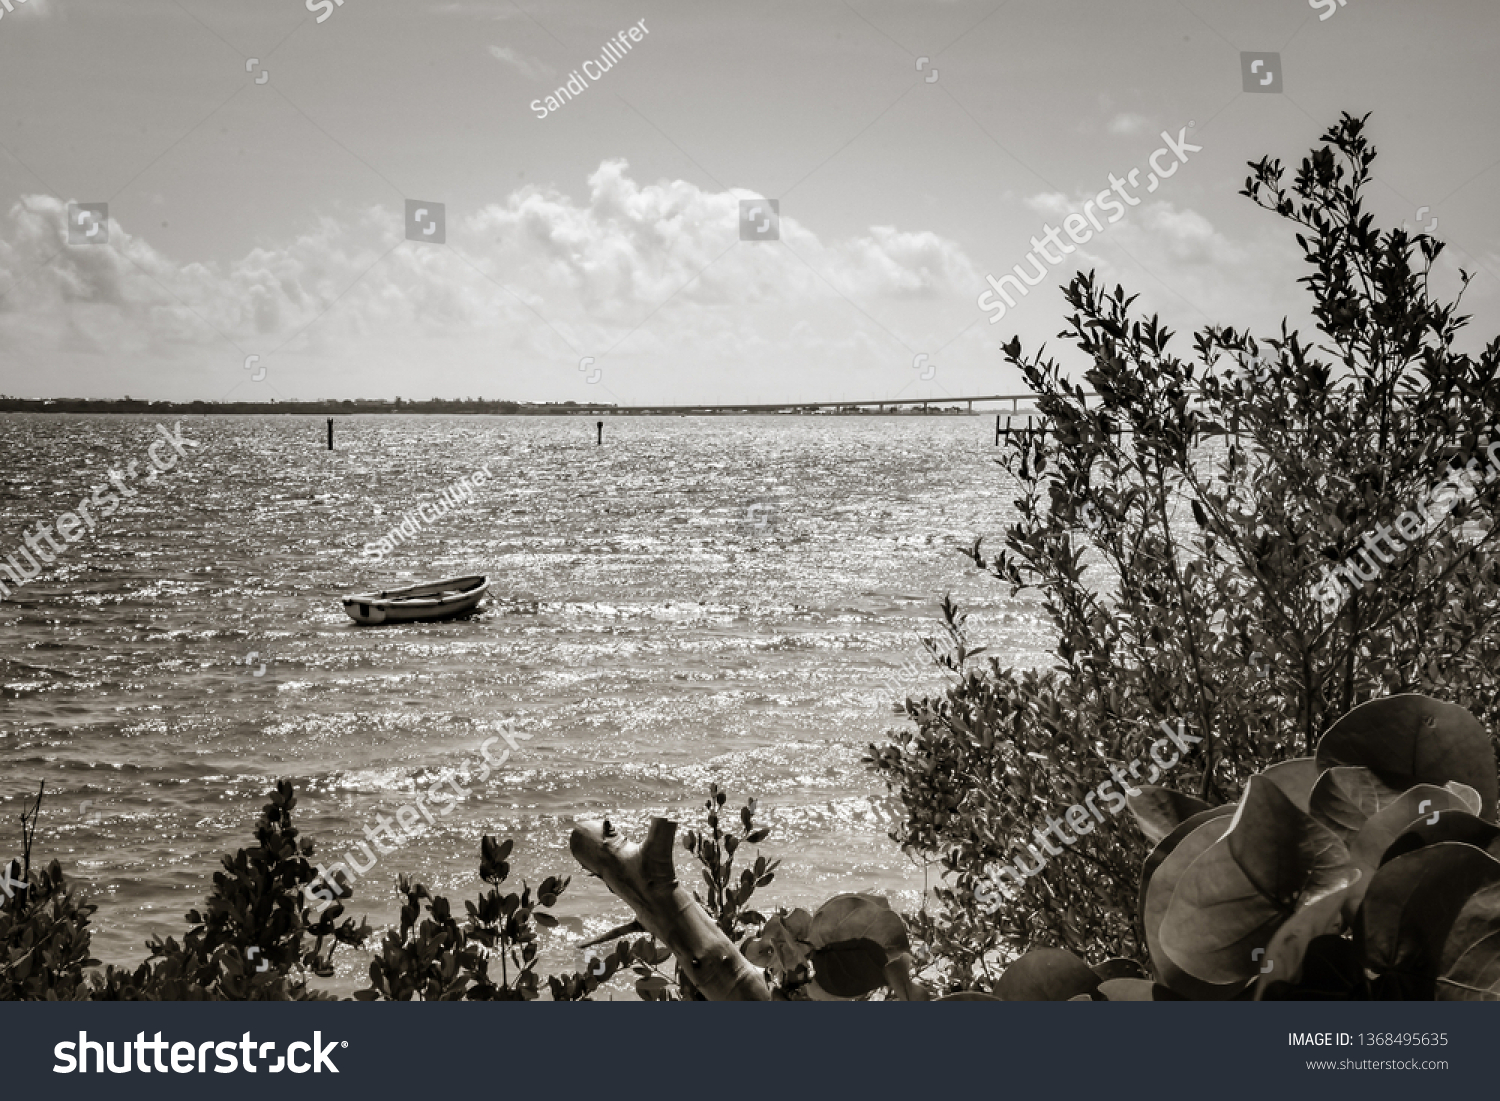 Artsy black and white view of a small boat anchored in a florida river with a